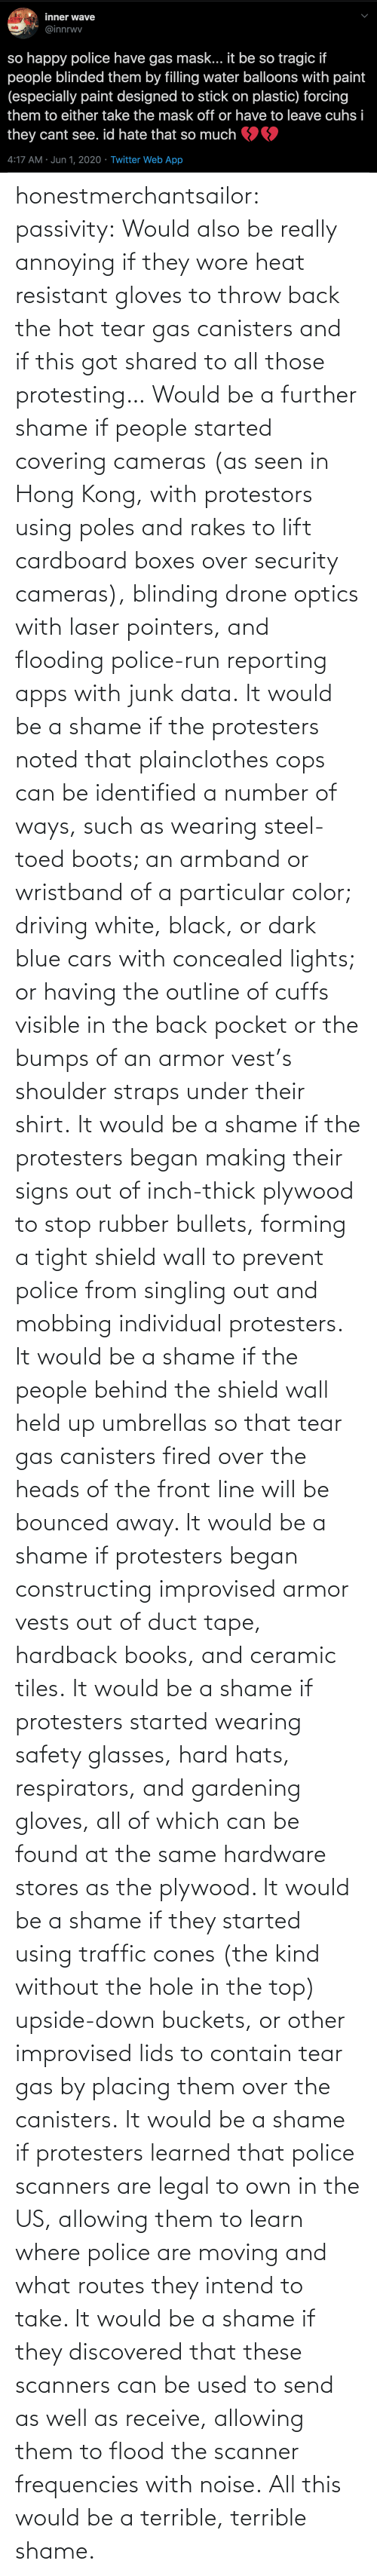 send: honestmerchantsailor:  passivity: Would also be really annoying if they wore heat resistant gloves to throw back the hot tear gas canisters and if this got shared to all those protesting… Would be a further shame if people started covering cameras (as seen in Hong Kong, with protestors using poles and rakes to lift cardboard boxes over security cameras), blinding drone optics with laser pointers, and flooding police-run reporting apps with junk data. It would be a shame if the protesters noted that plainclothes cops can be identified a number of ways, such as wearing steel-toed boots; an armband or wristband of a particular color; driving white, black, or dark blue cars with concealed lights; or having the outline of cuffs visible in the back pocket or the bumps of an armor vest's shoulder straps under their shirt. It would be a shame if the protesters began making their signs out of inch-thick plywood to stop rubber bullets, forming a tight shield wall to prevent police from singling out and mobbing individual protesters. It would be a shame if the people behind the shield wall held up umbrellas so that tear gas canisters fired over the heads of the front line will be bounced away. It would be a shame if protesters began constructing improvised armor vests out of duct tape, hardback books, and ceramic tiles. It would be a shame if protesters started wearing safety glasses, hard hats, respirators, and gardening gloves, all of which can be found at the same hardware stores as the plywood. It would be a shame if they started using traffic cones (the kind without the hole in the top) upside-down buckets, or other improvised lids to contain tear gas by placing them over the canisters. It would be a shame if protesters learned that police scanners are legal to own in the US, allowing them to learn where police are moving and what routes they intend to take. It would be a shame if they discovered that these scanners can be used to send as well as receive, allowing them to flood the scanner frequencies with noise. All this would be a terrible, terrible shame.